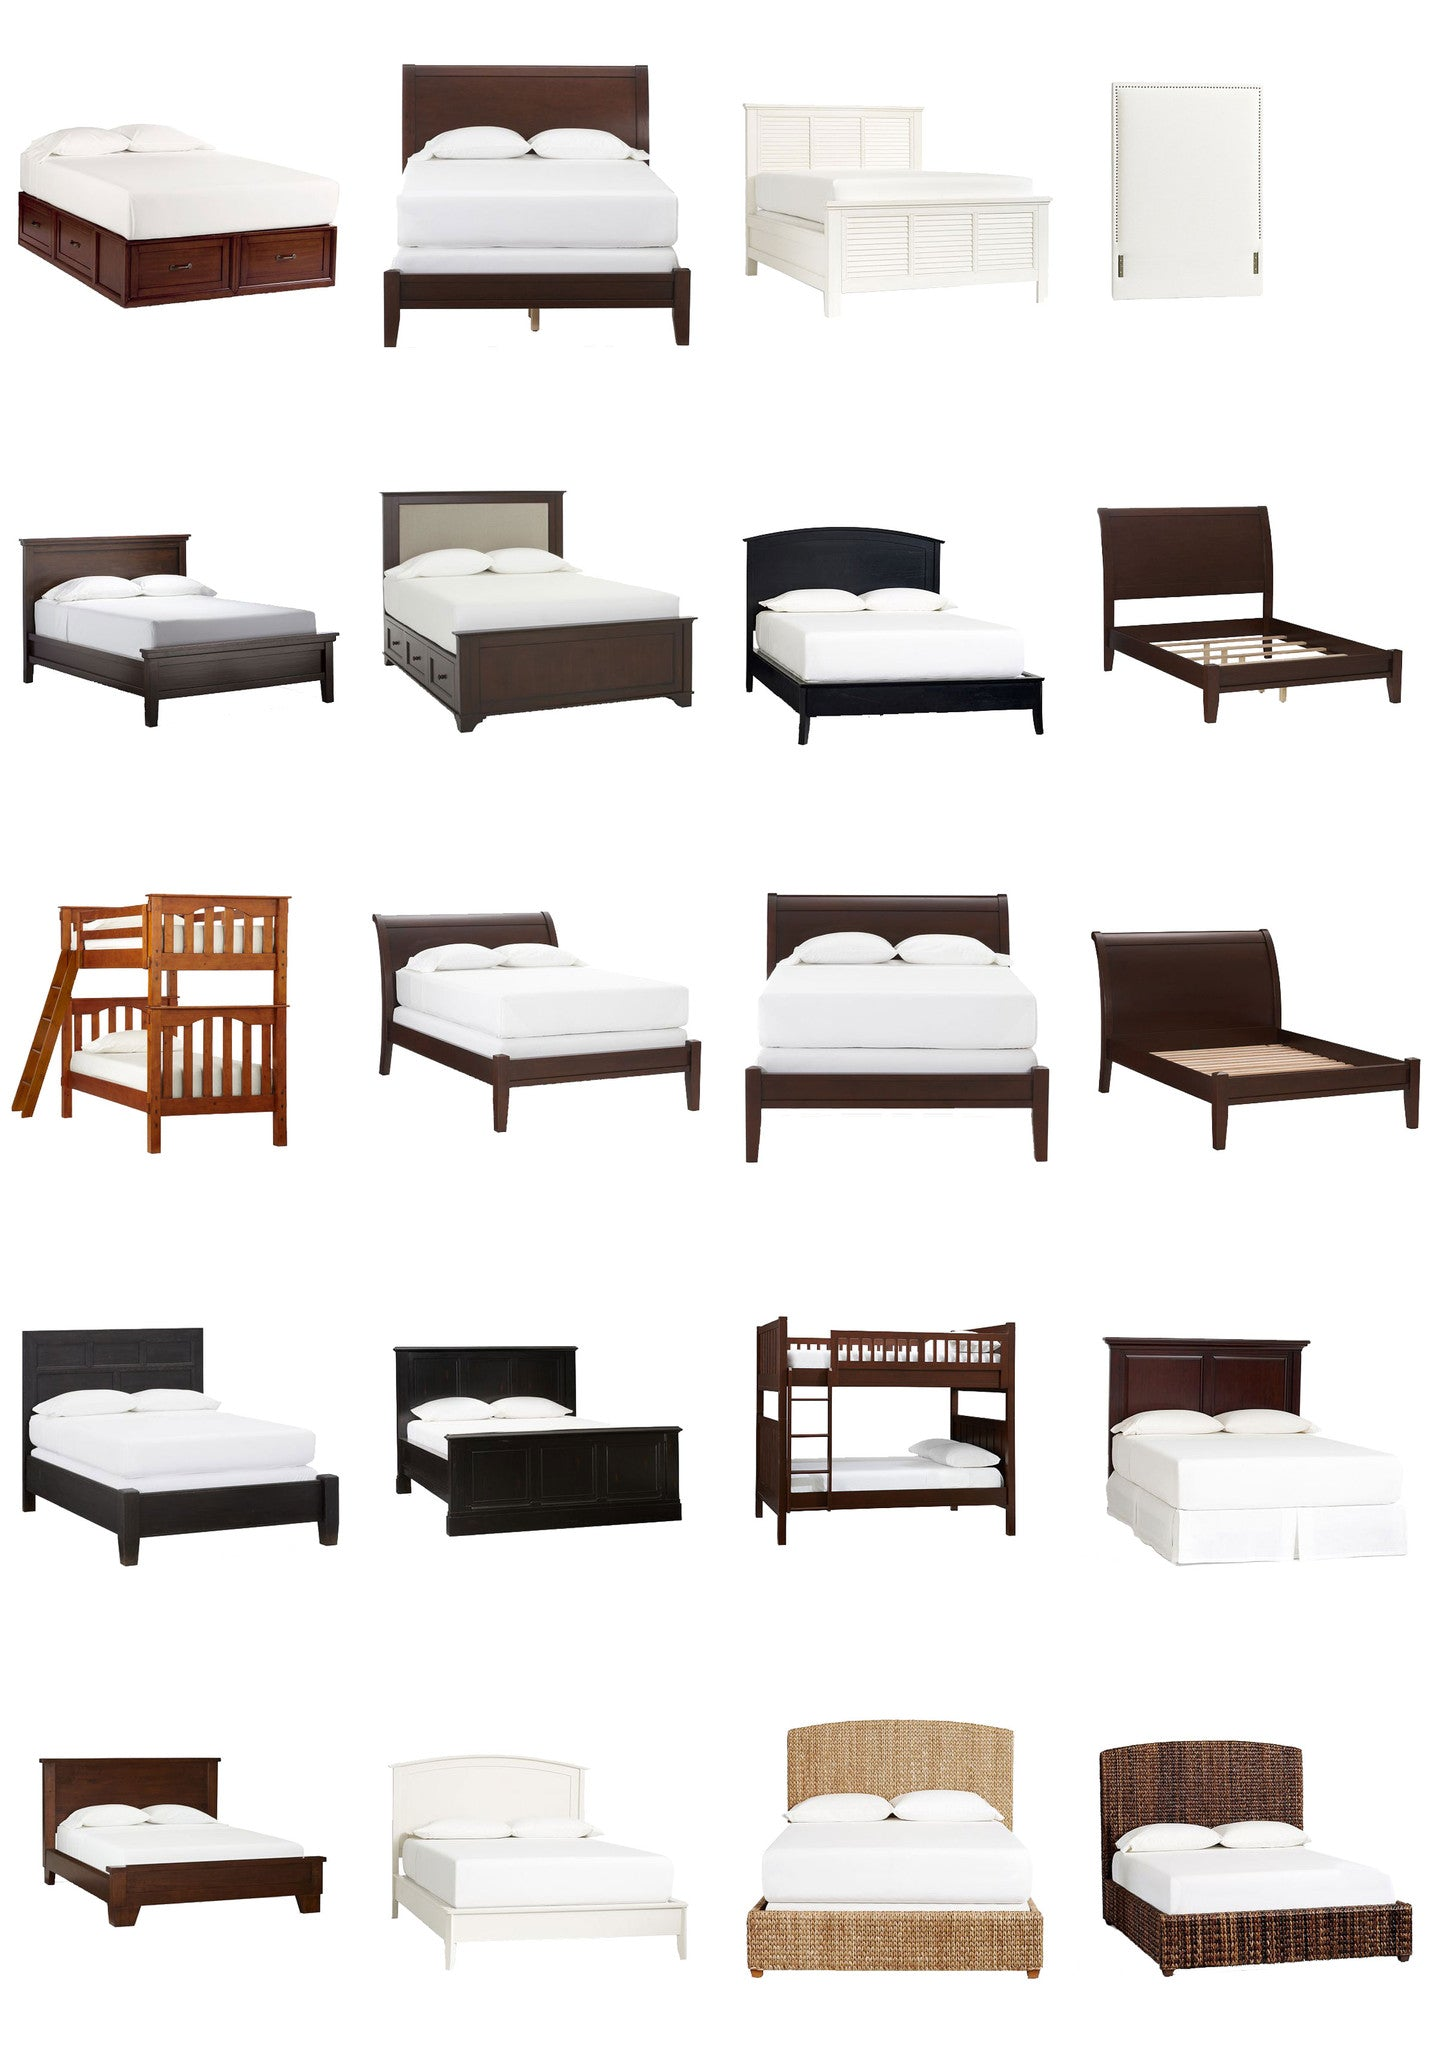 Photoshop Psd Bed Blocks V1 Cad Design Free Cad Blocks